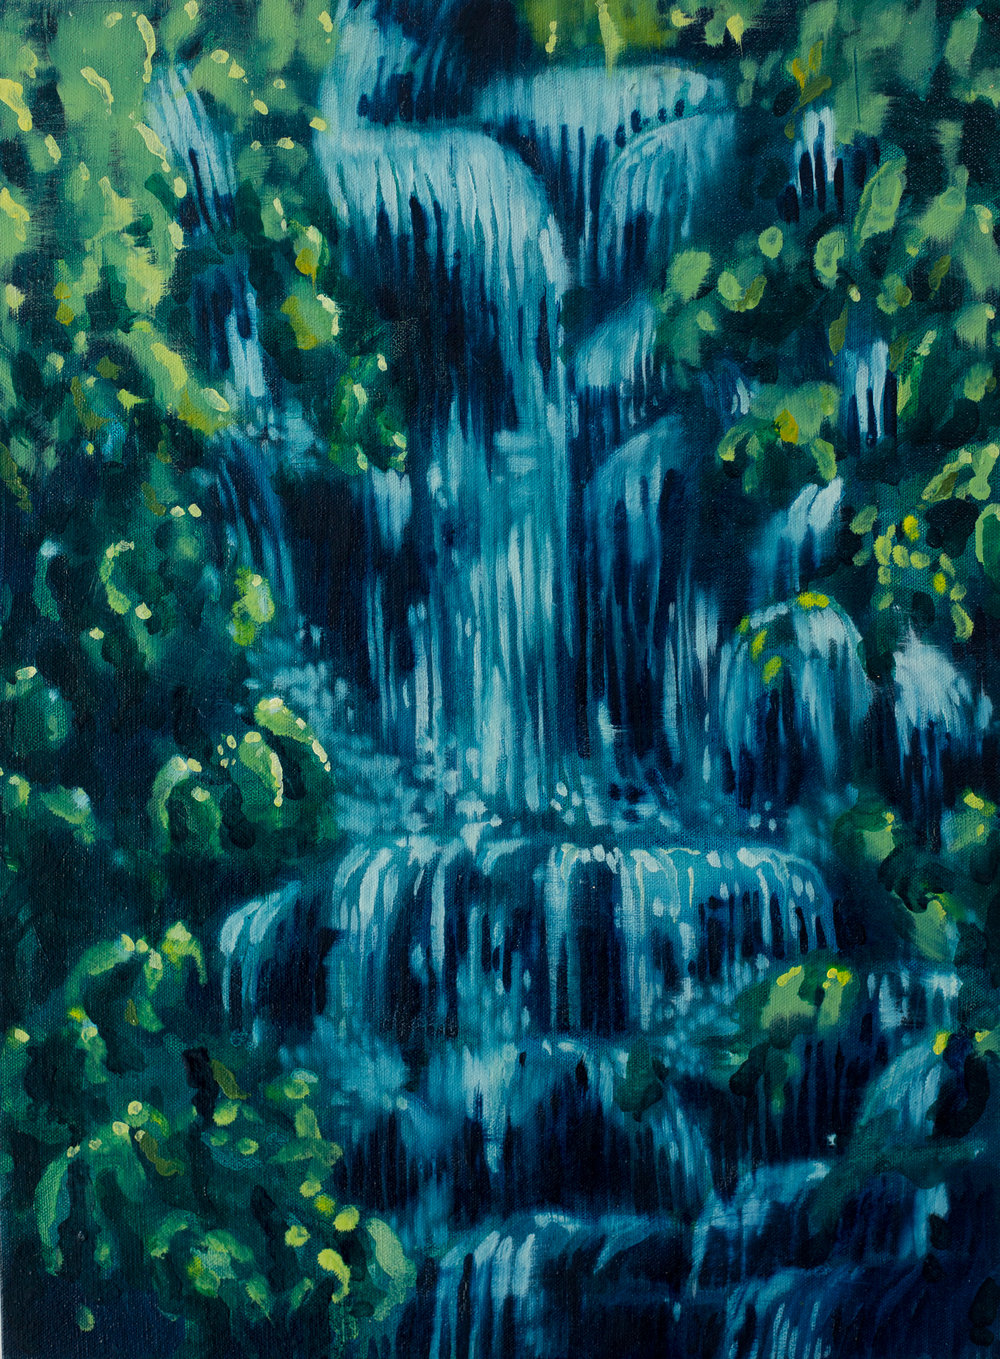 ' Where the River Still Runs'   Leila Walter  Oil on Canvas  400 x 540 x 40 mm  R 4340.00 excl. vat